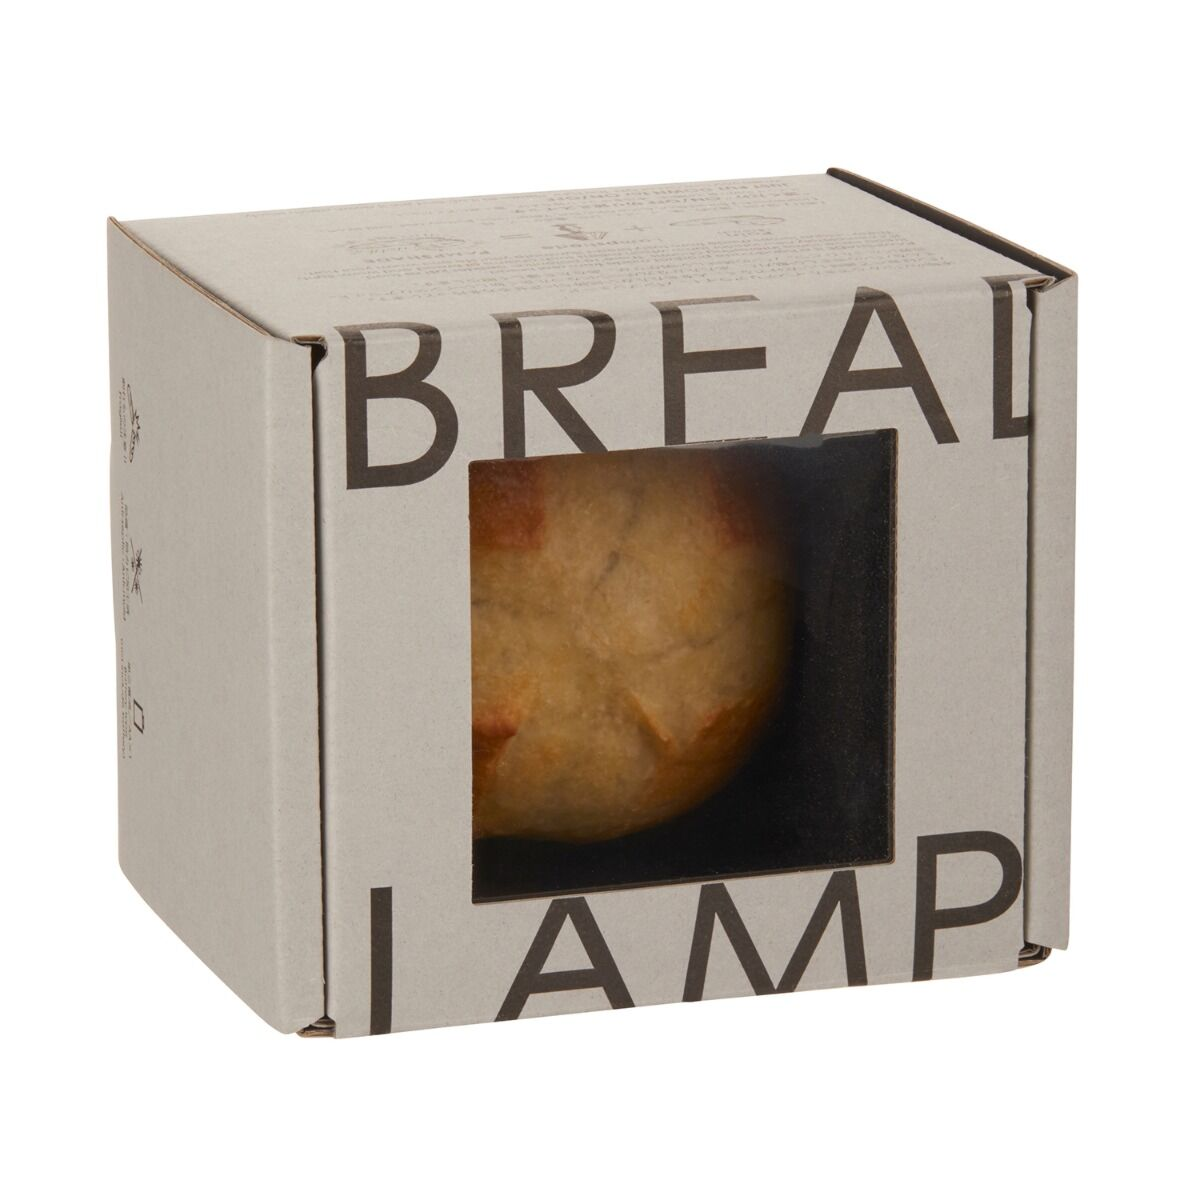 Dinner Roll Lamp image